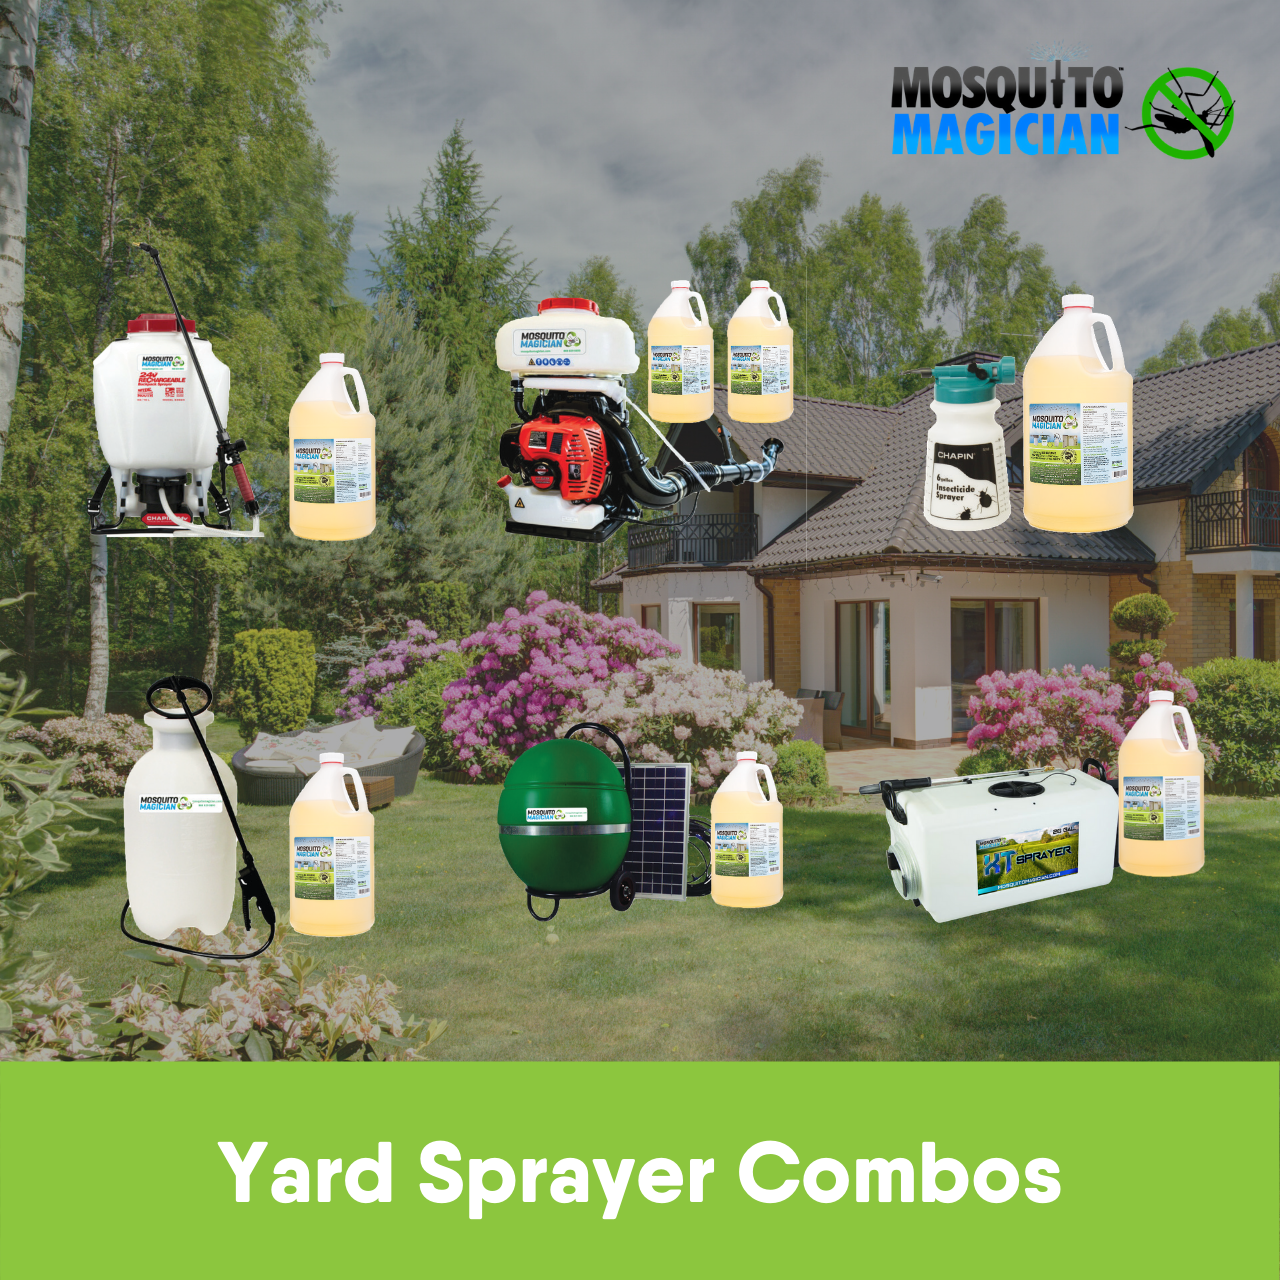 Mosquito Magician Yard Sprayer Combos